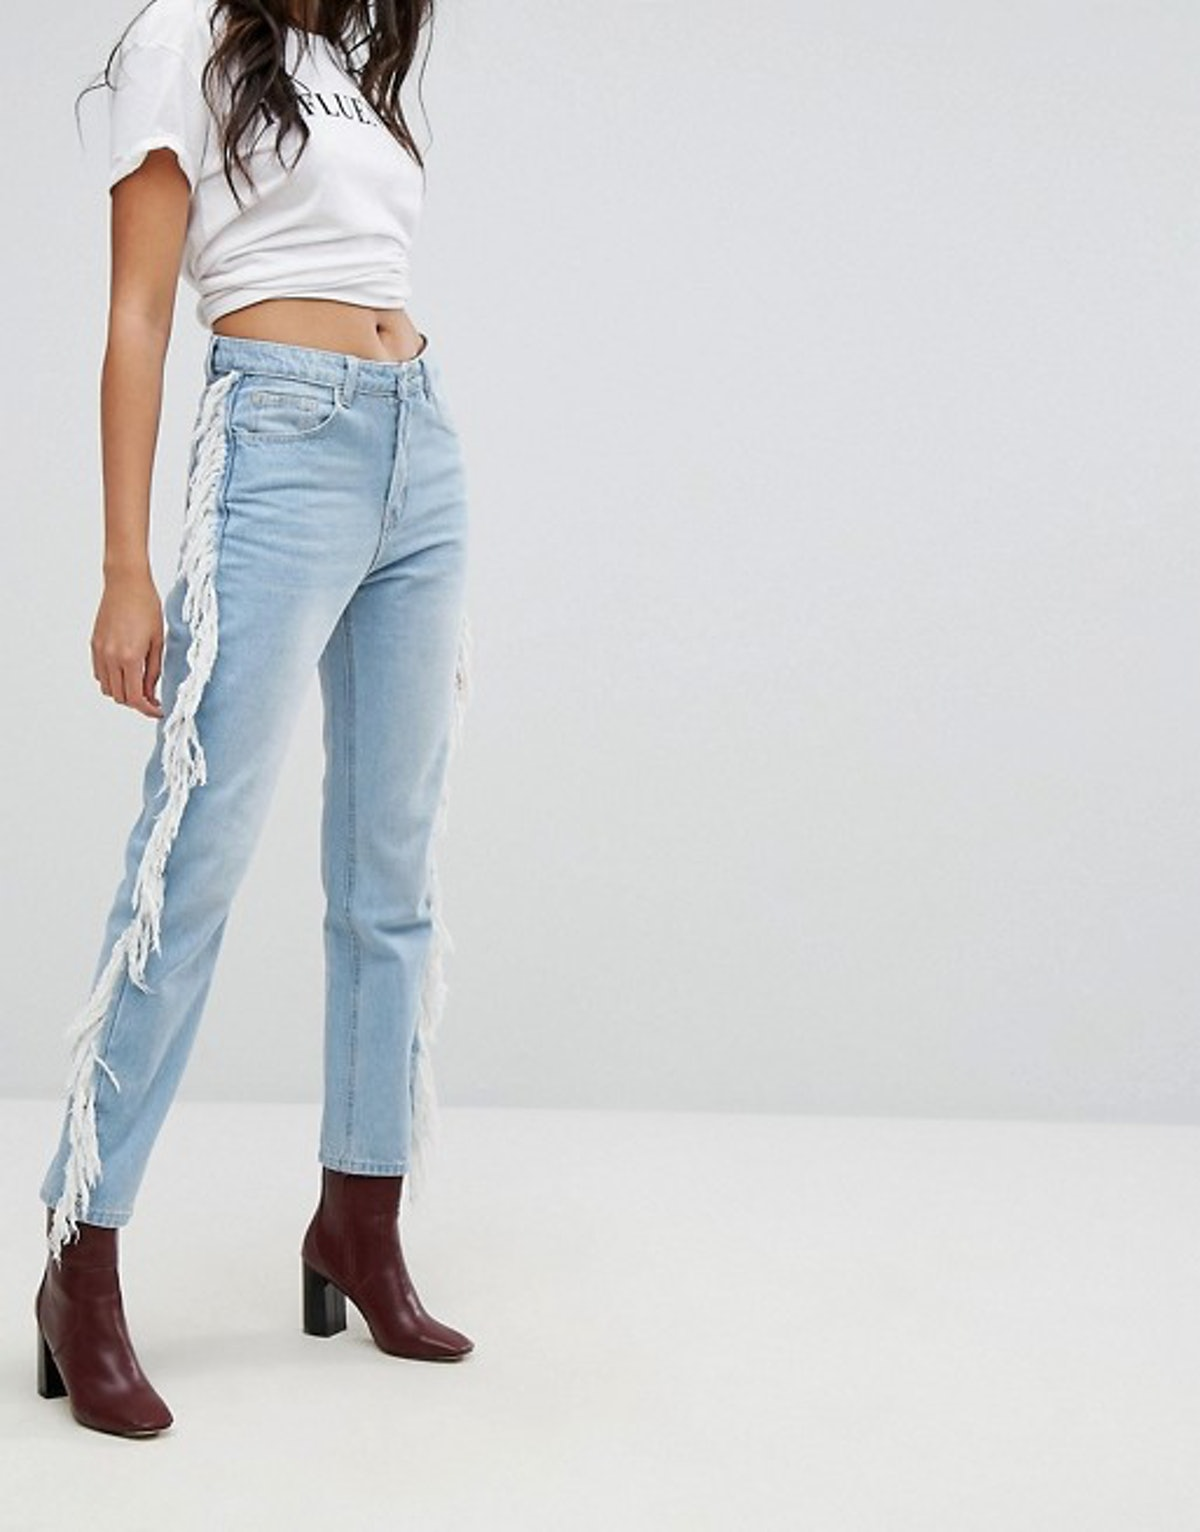 PrettyLittleThing Fray Side Jeans